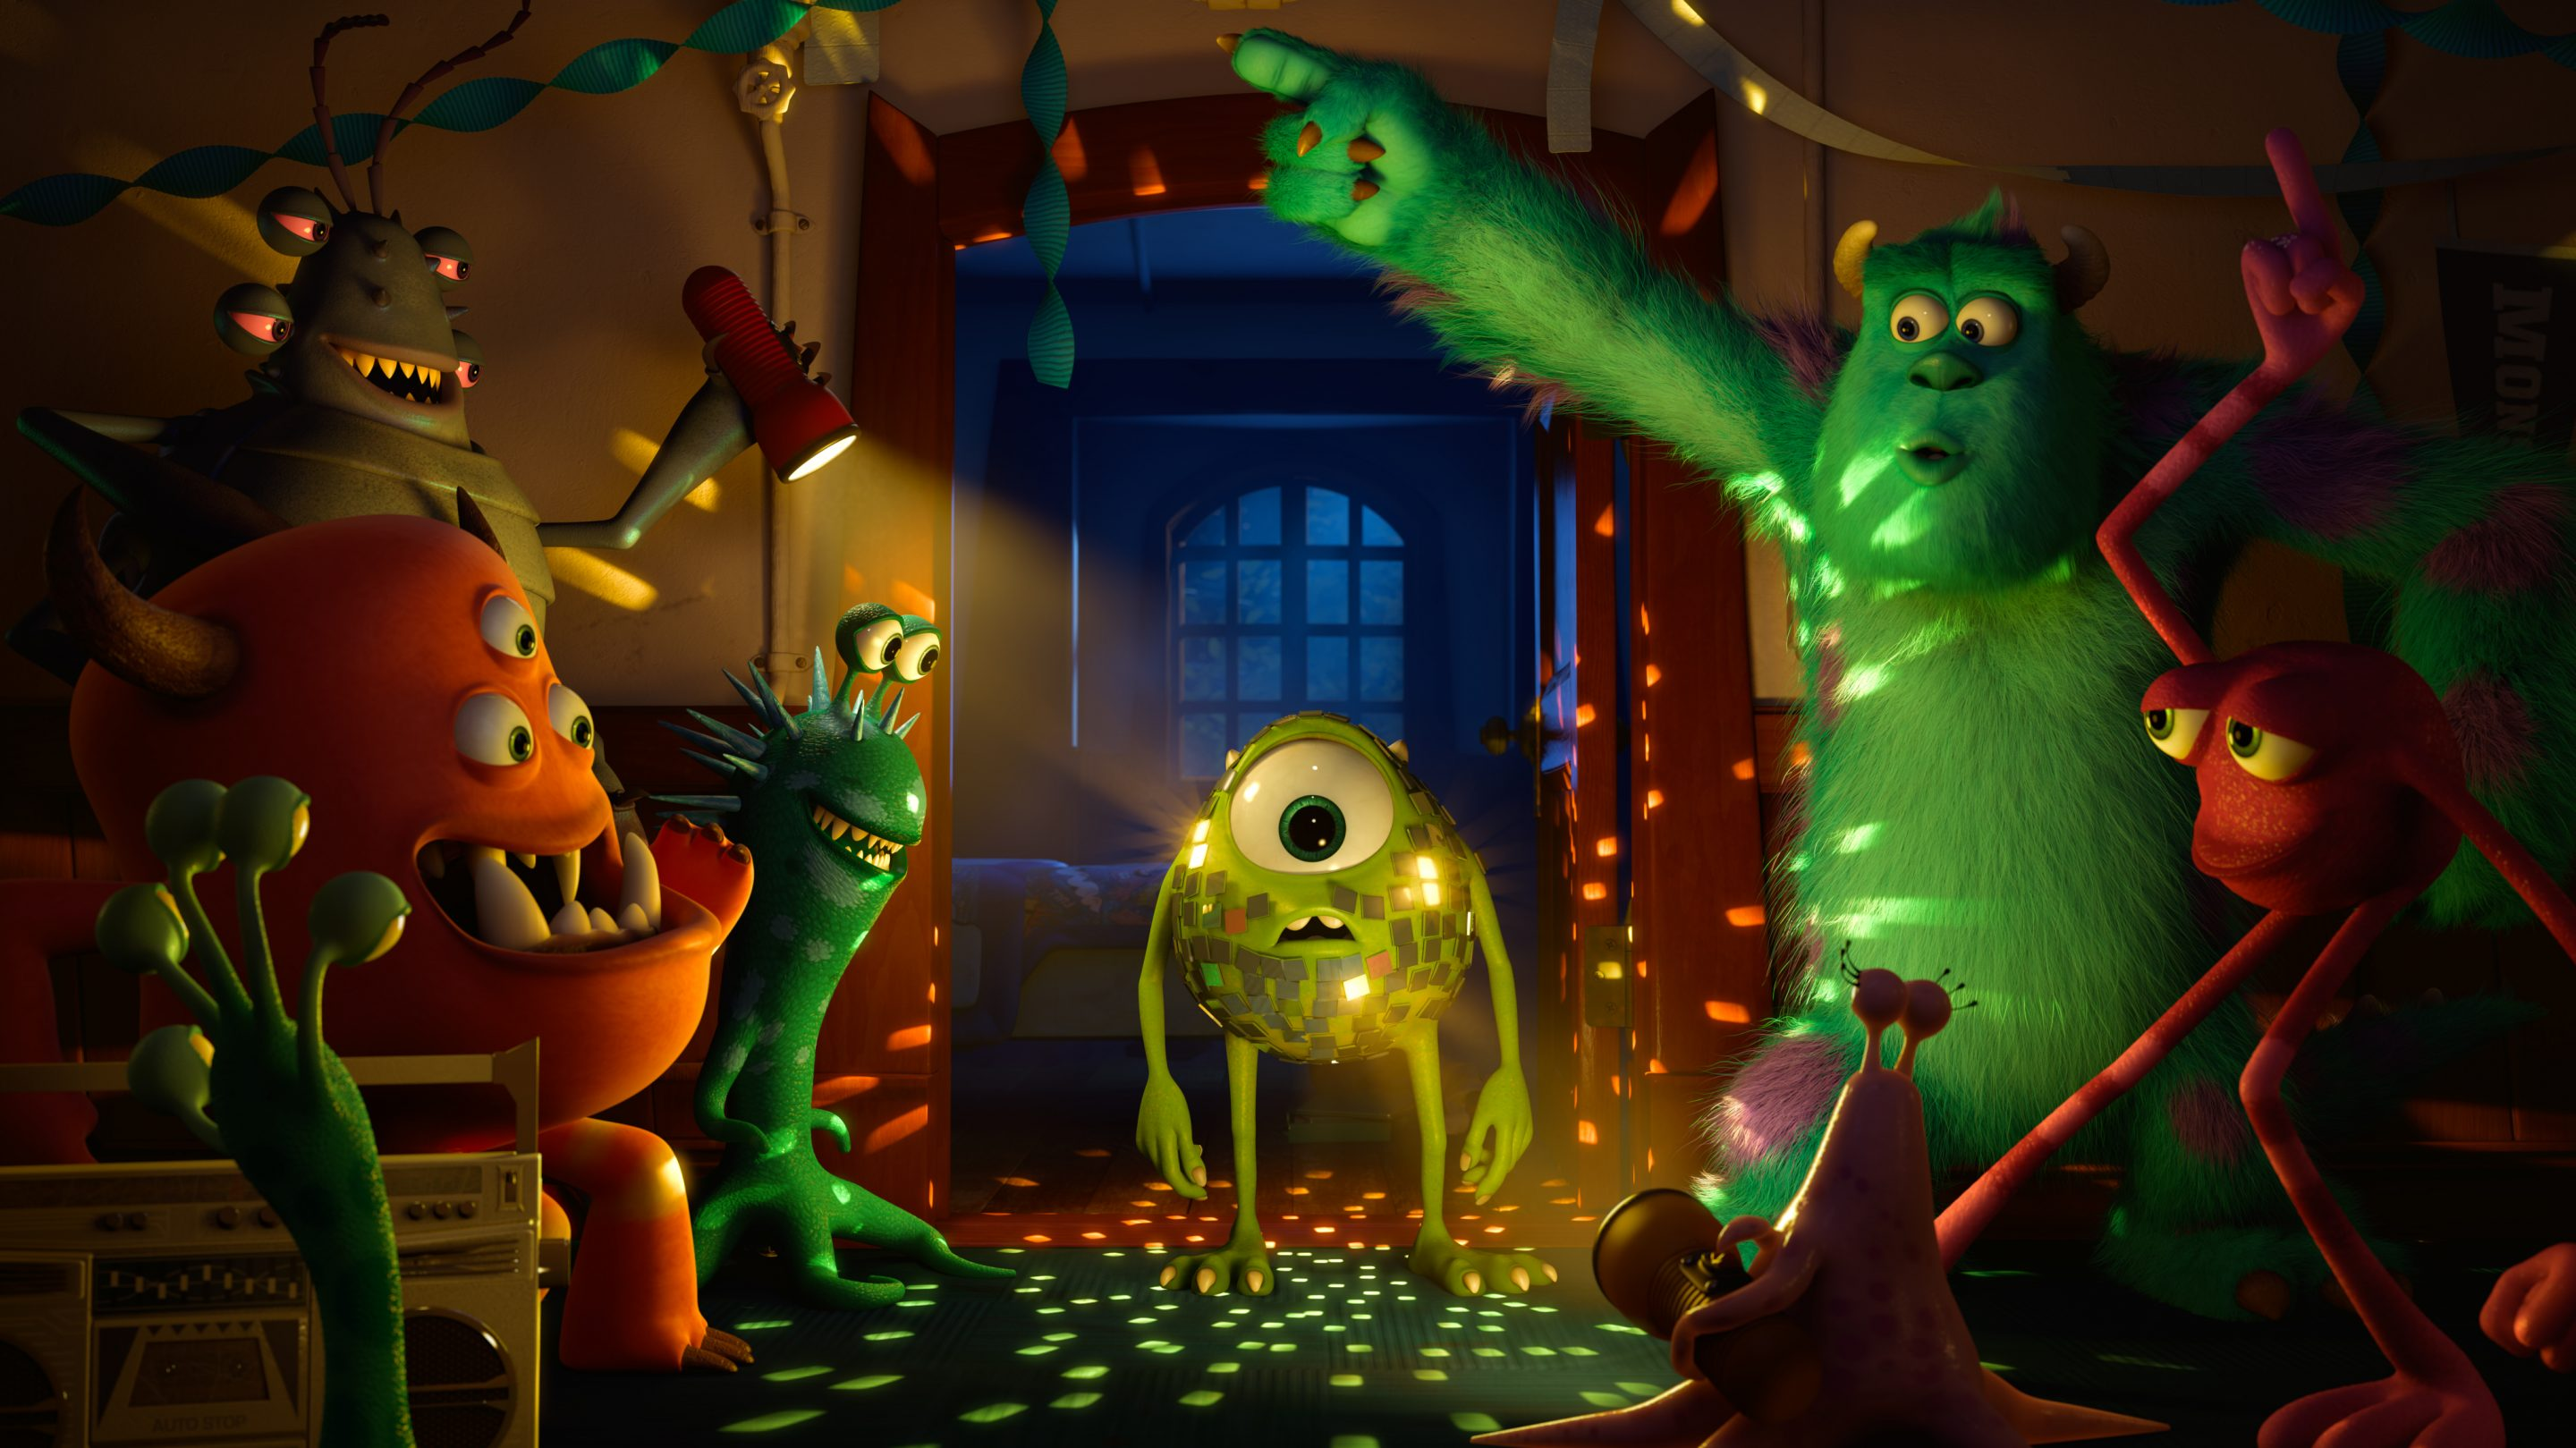 Disney Pixar Monsters University Teaser Trailers and Movie Images